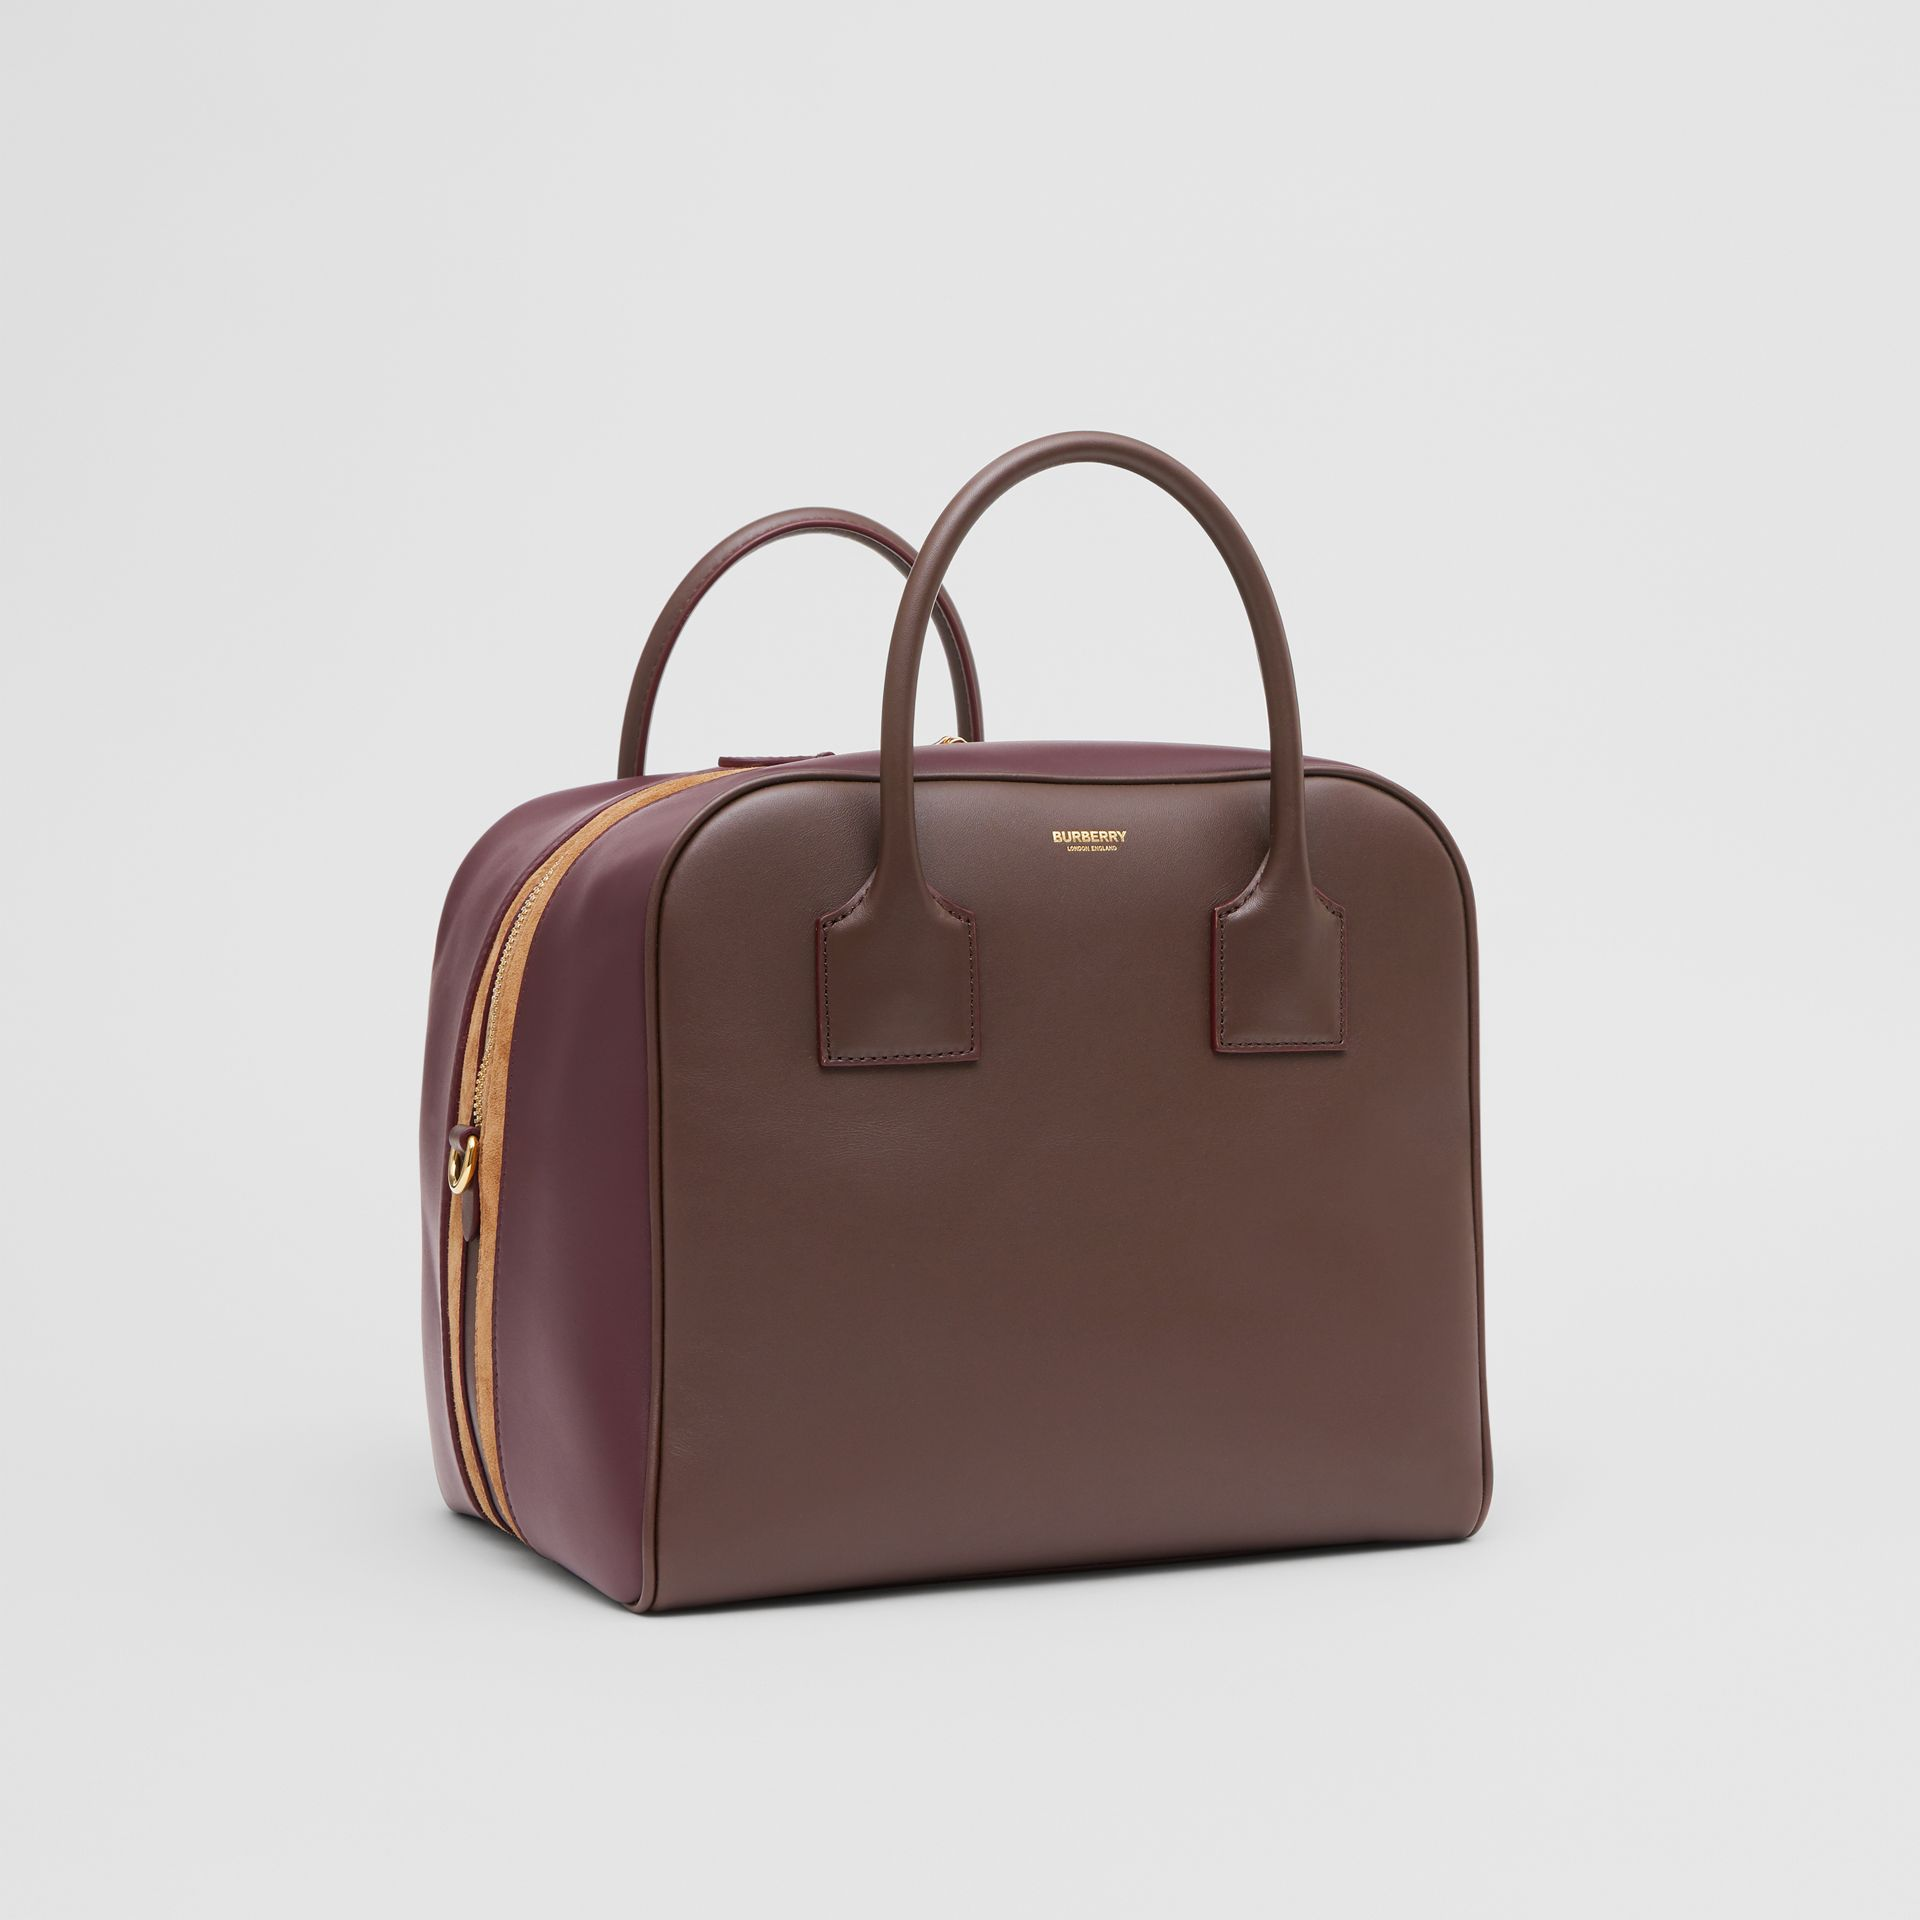 Medium Leather and Suede Cube Bag in Mahogany - Women | Burberry United Kingdom - gallery image 6